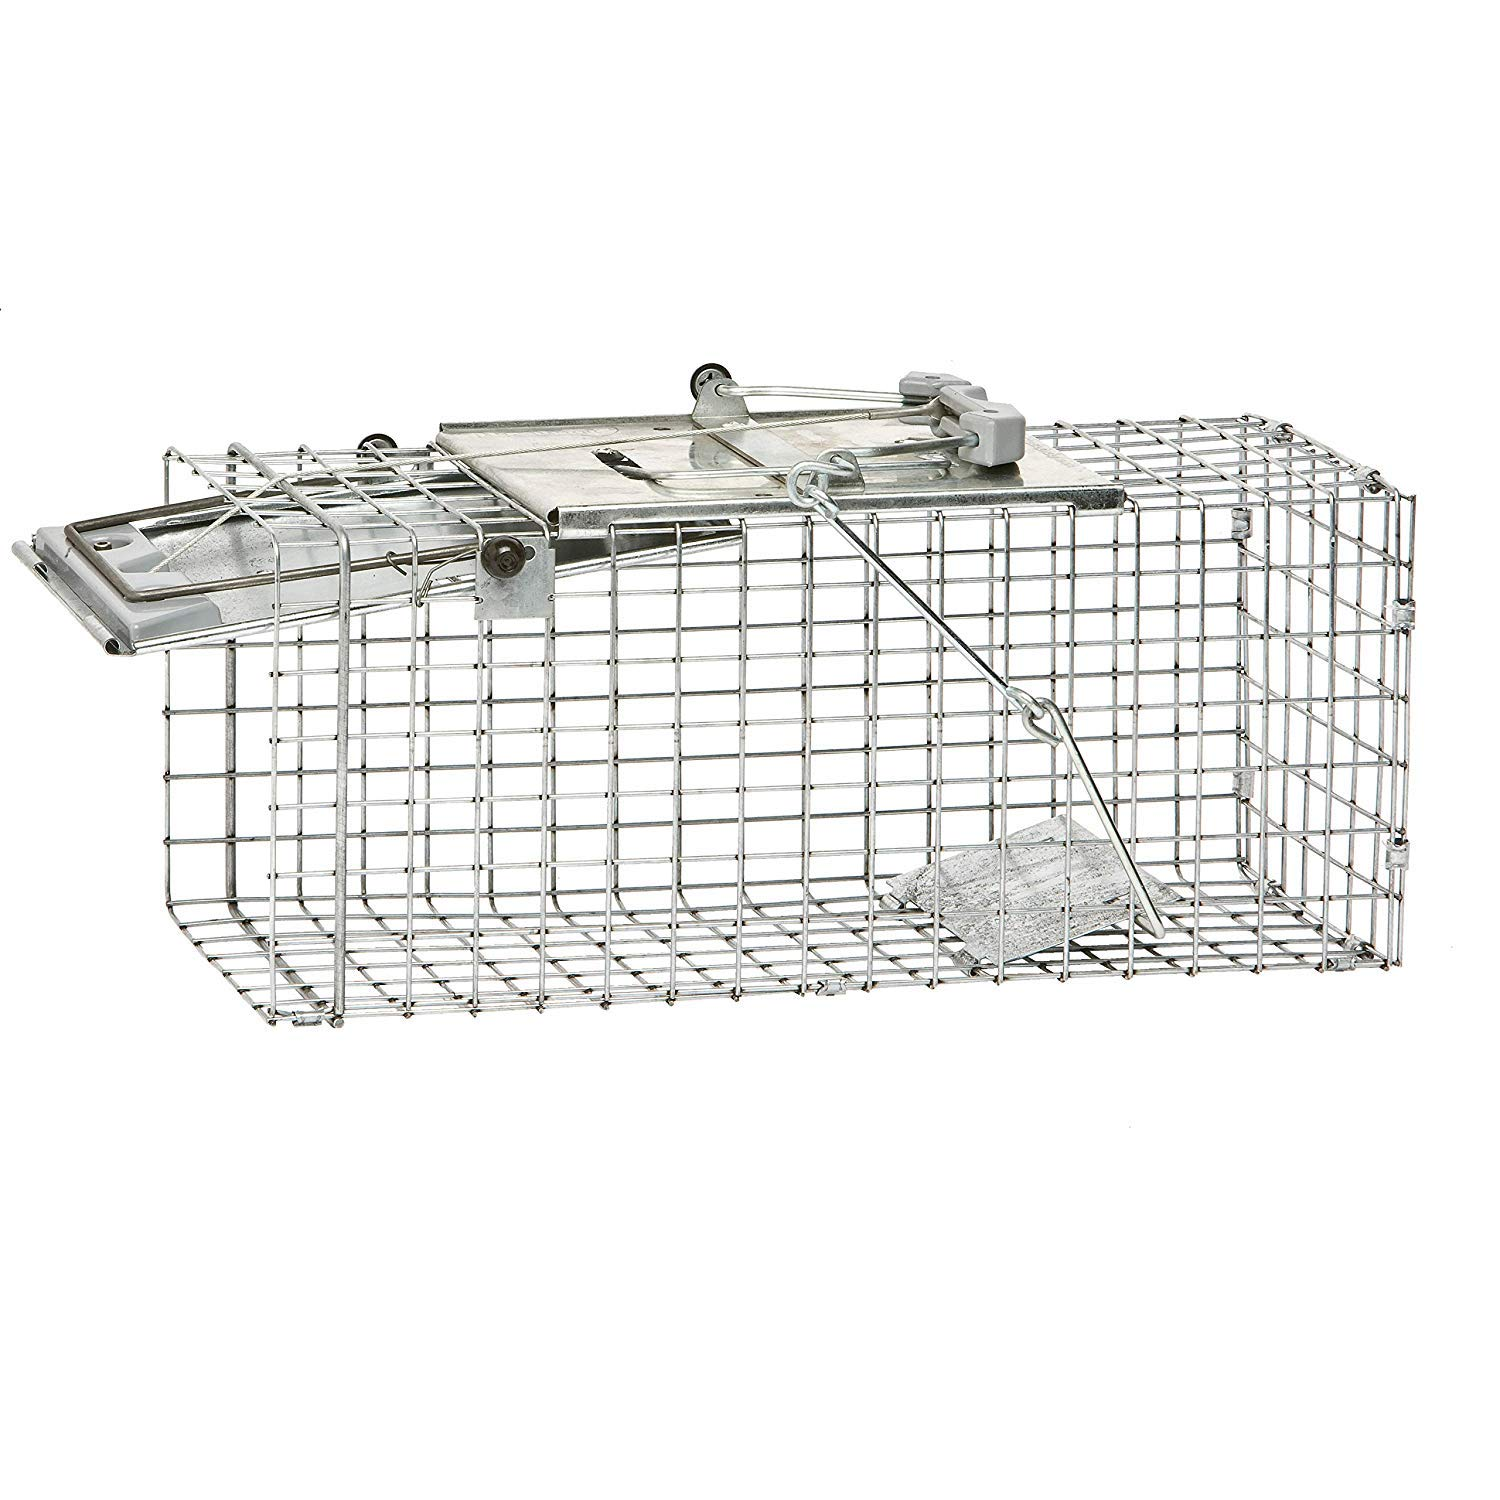 Havahart 1083 Easy Set One-Door Cage Trap for Squirrels and Small Rabbits (Pack of 2) by Havahart